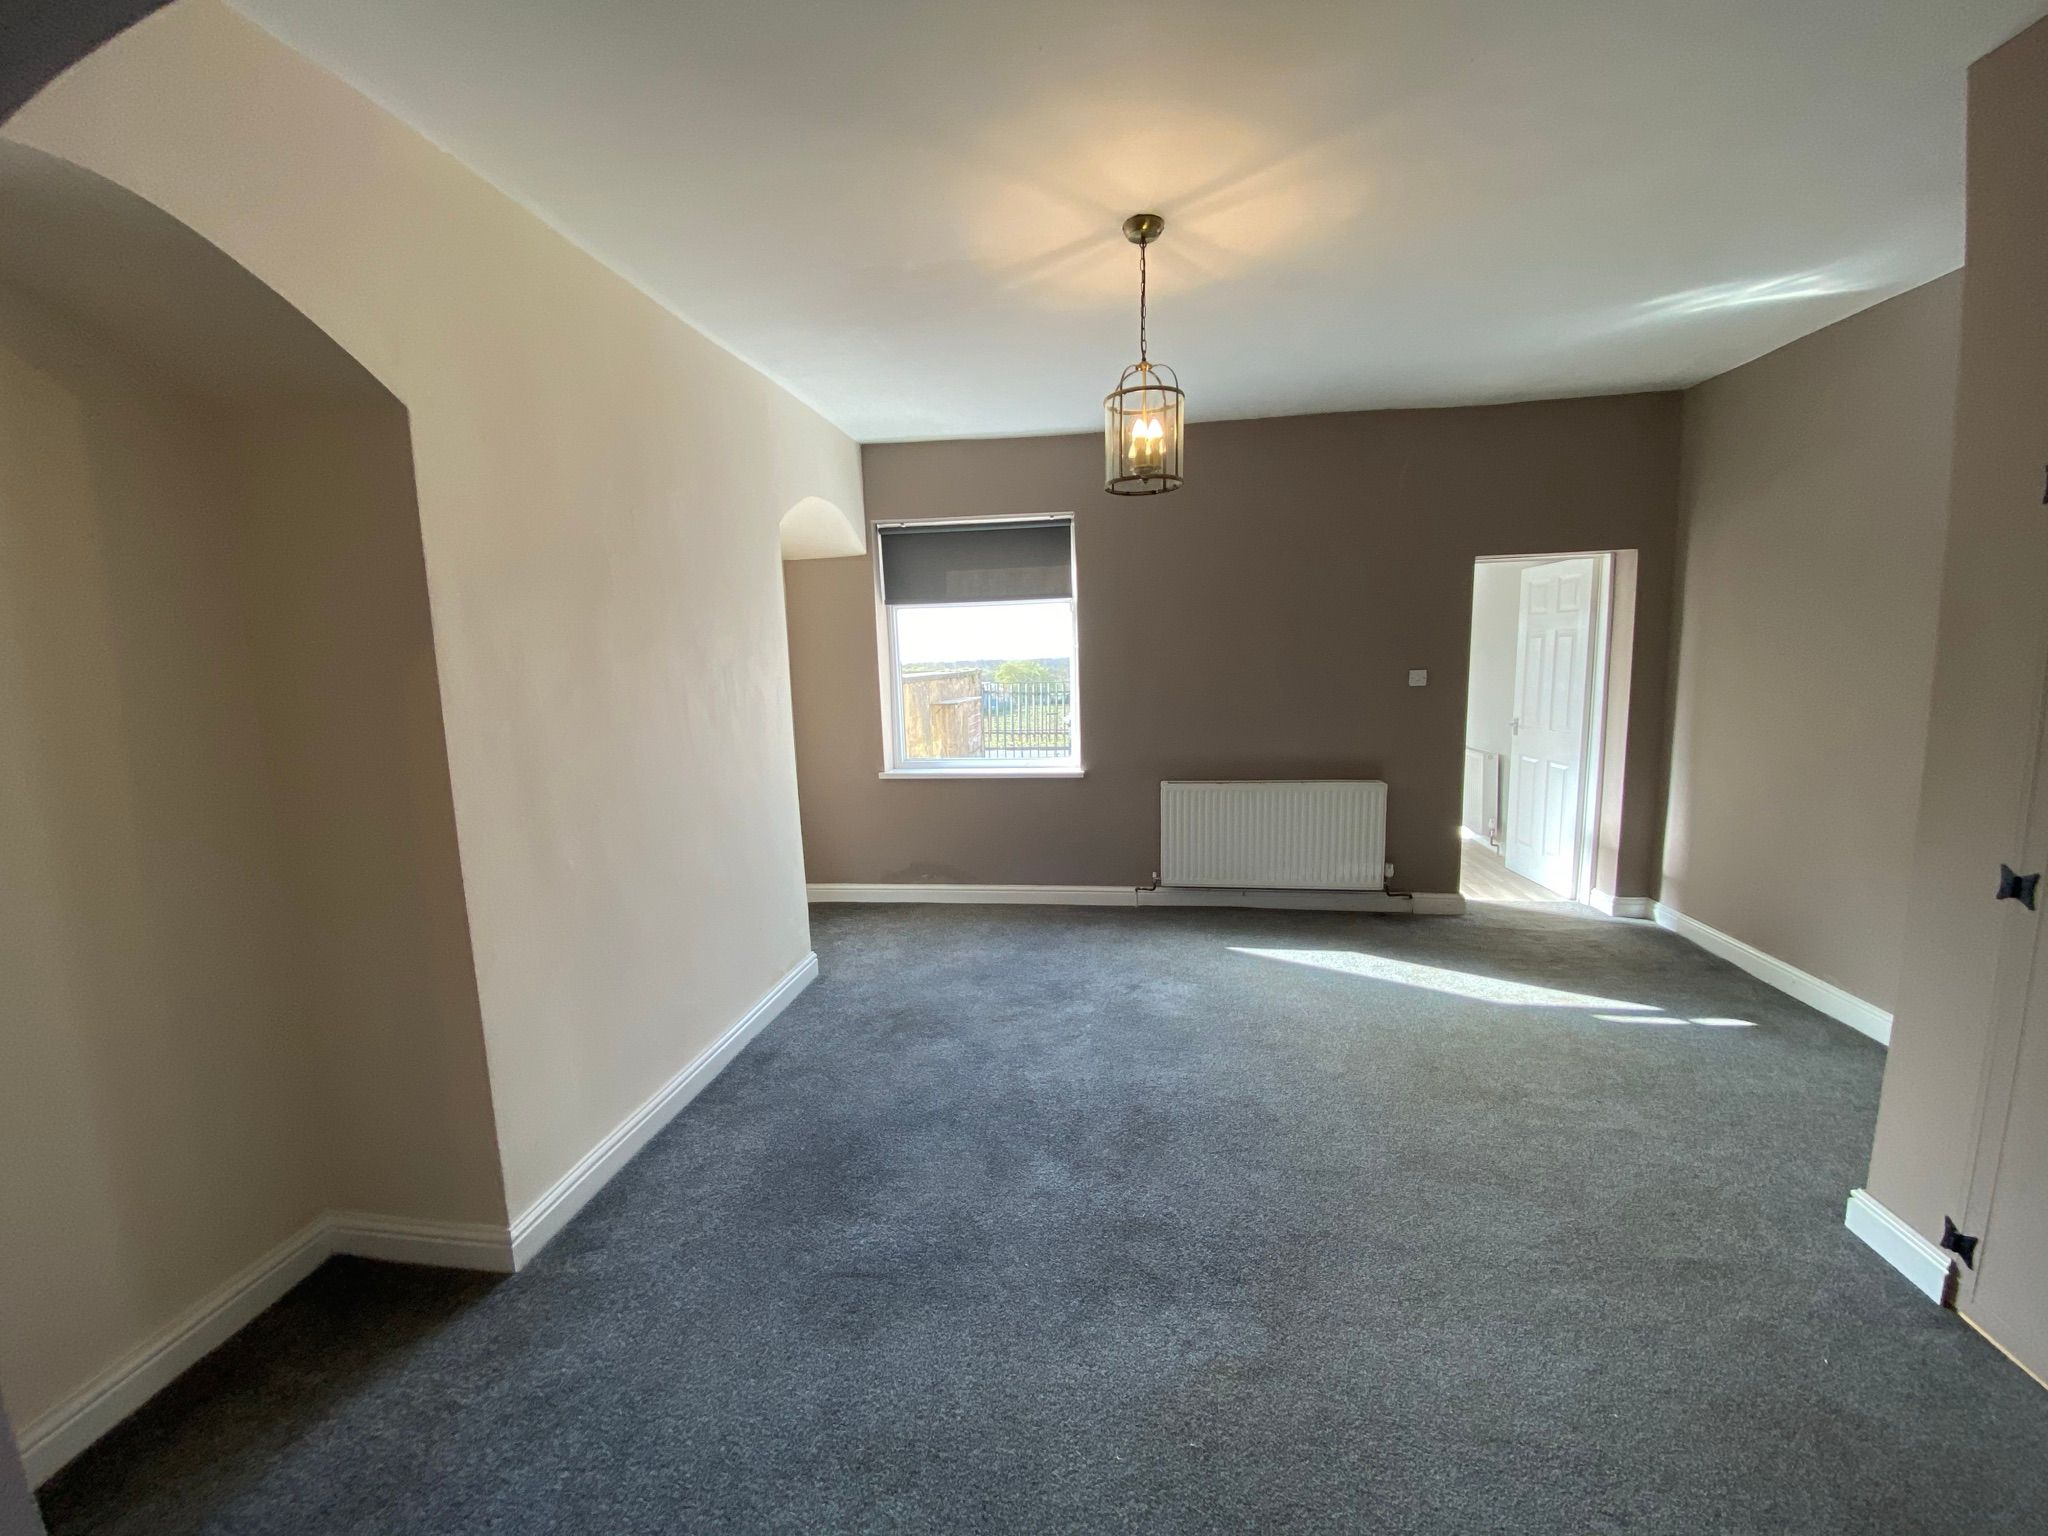 2 bedroom mid terraced house Let Agreed in Ferryhill - Photograph 3.